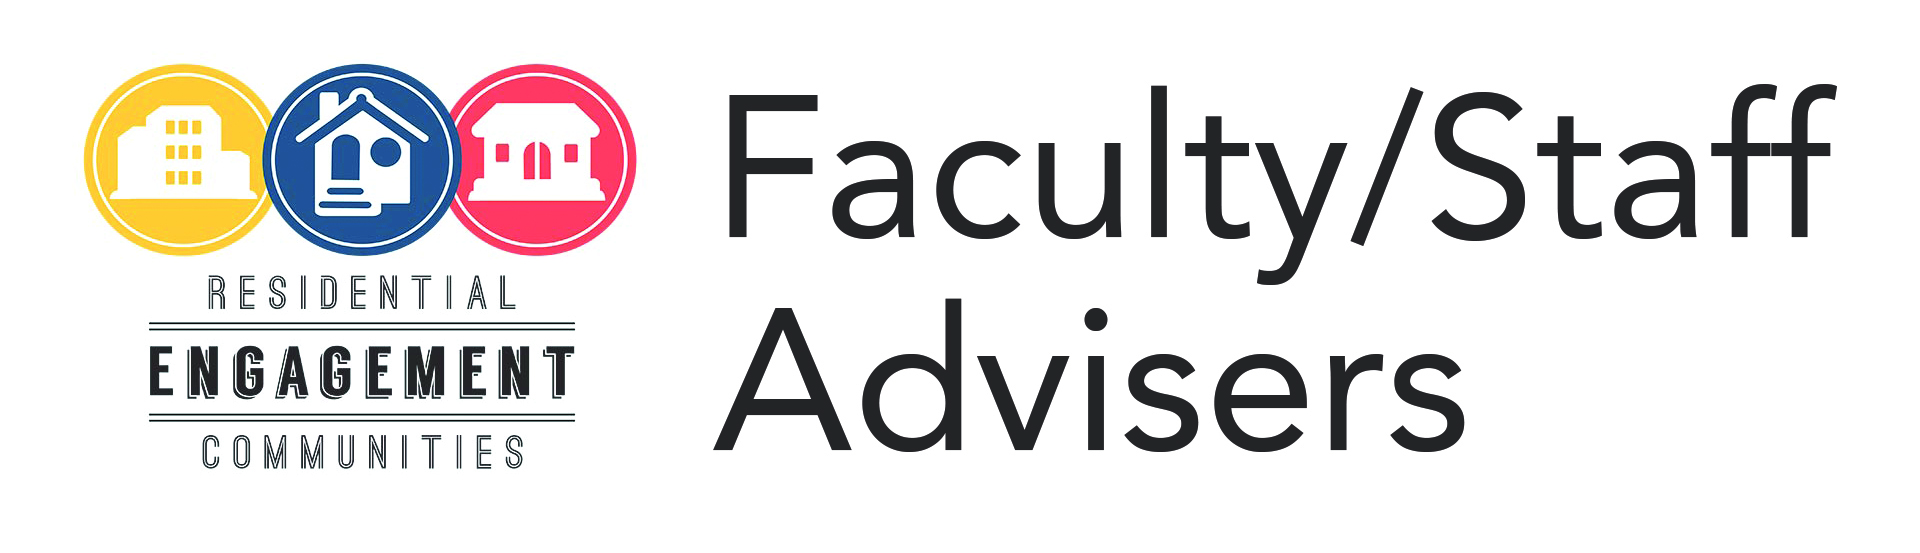 Faculty/Staff Advisers Logo Heading